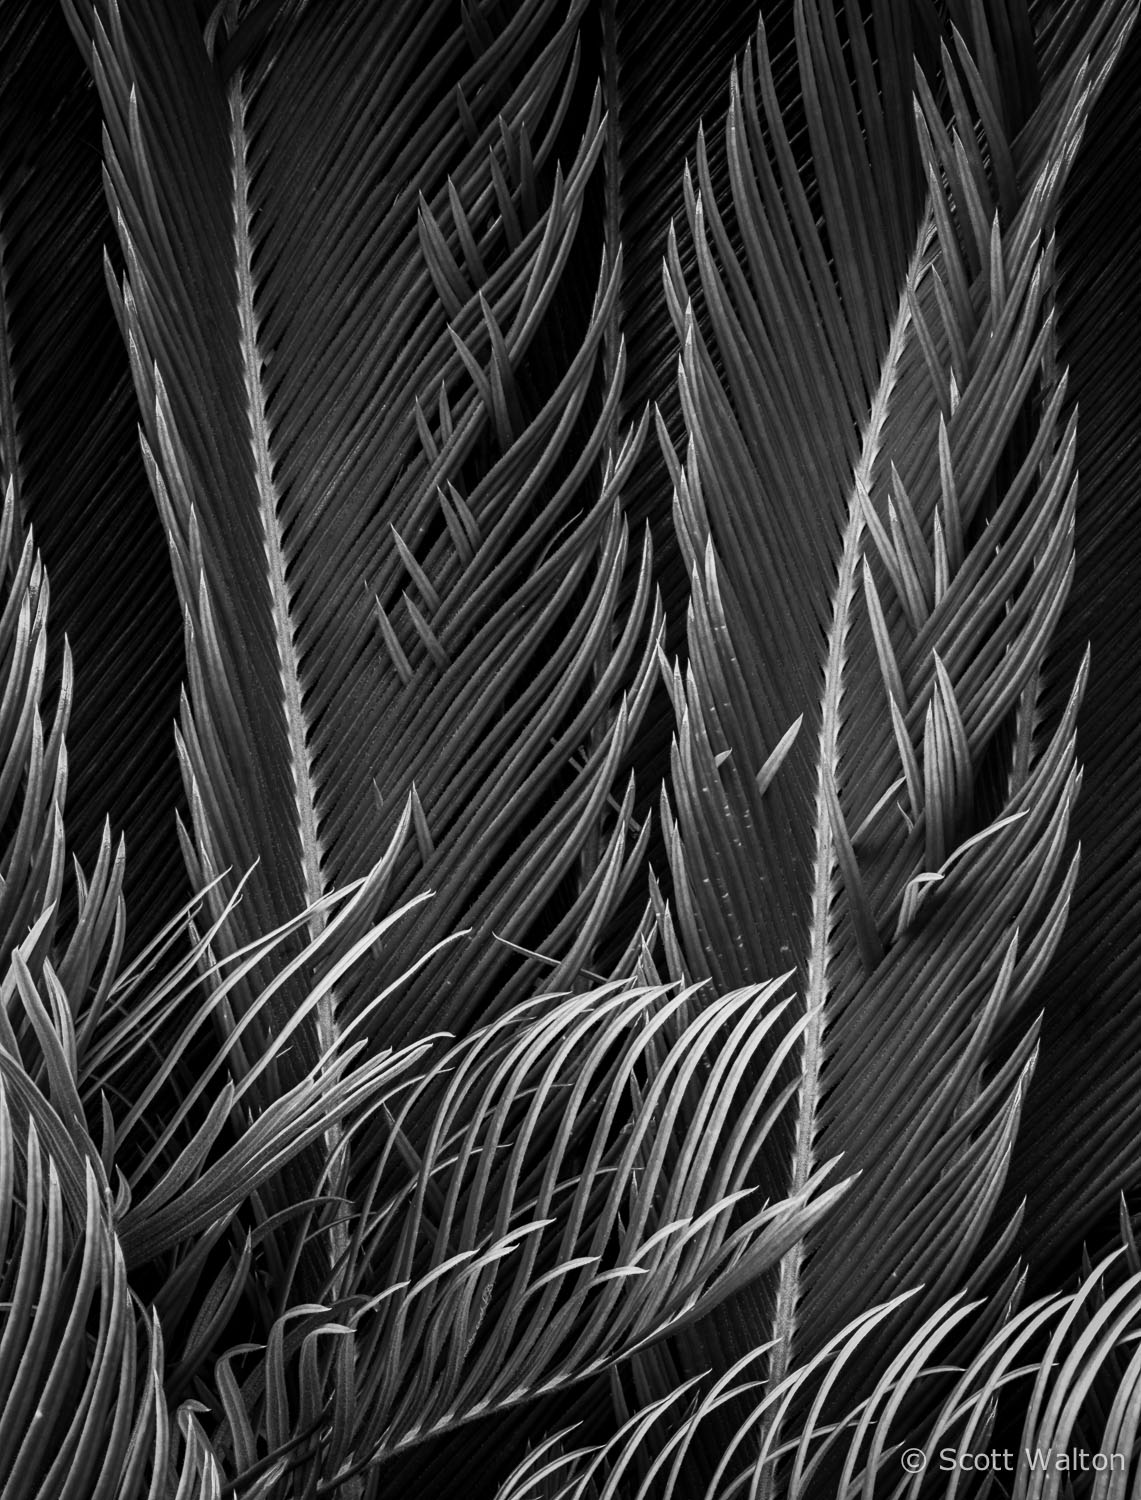 king-sego-palm-detail-niceville-florida.jpg